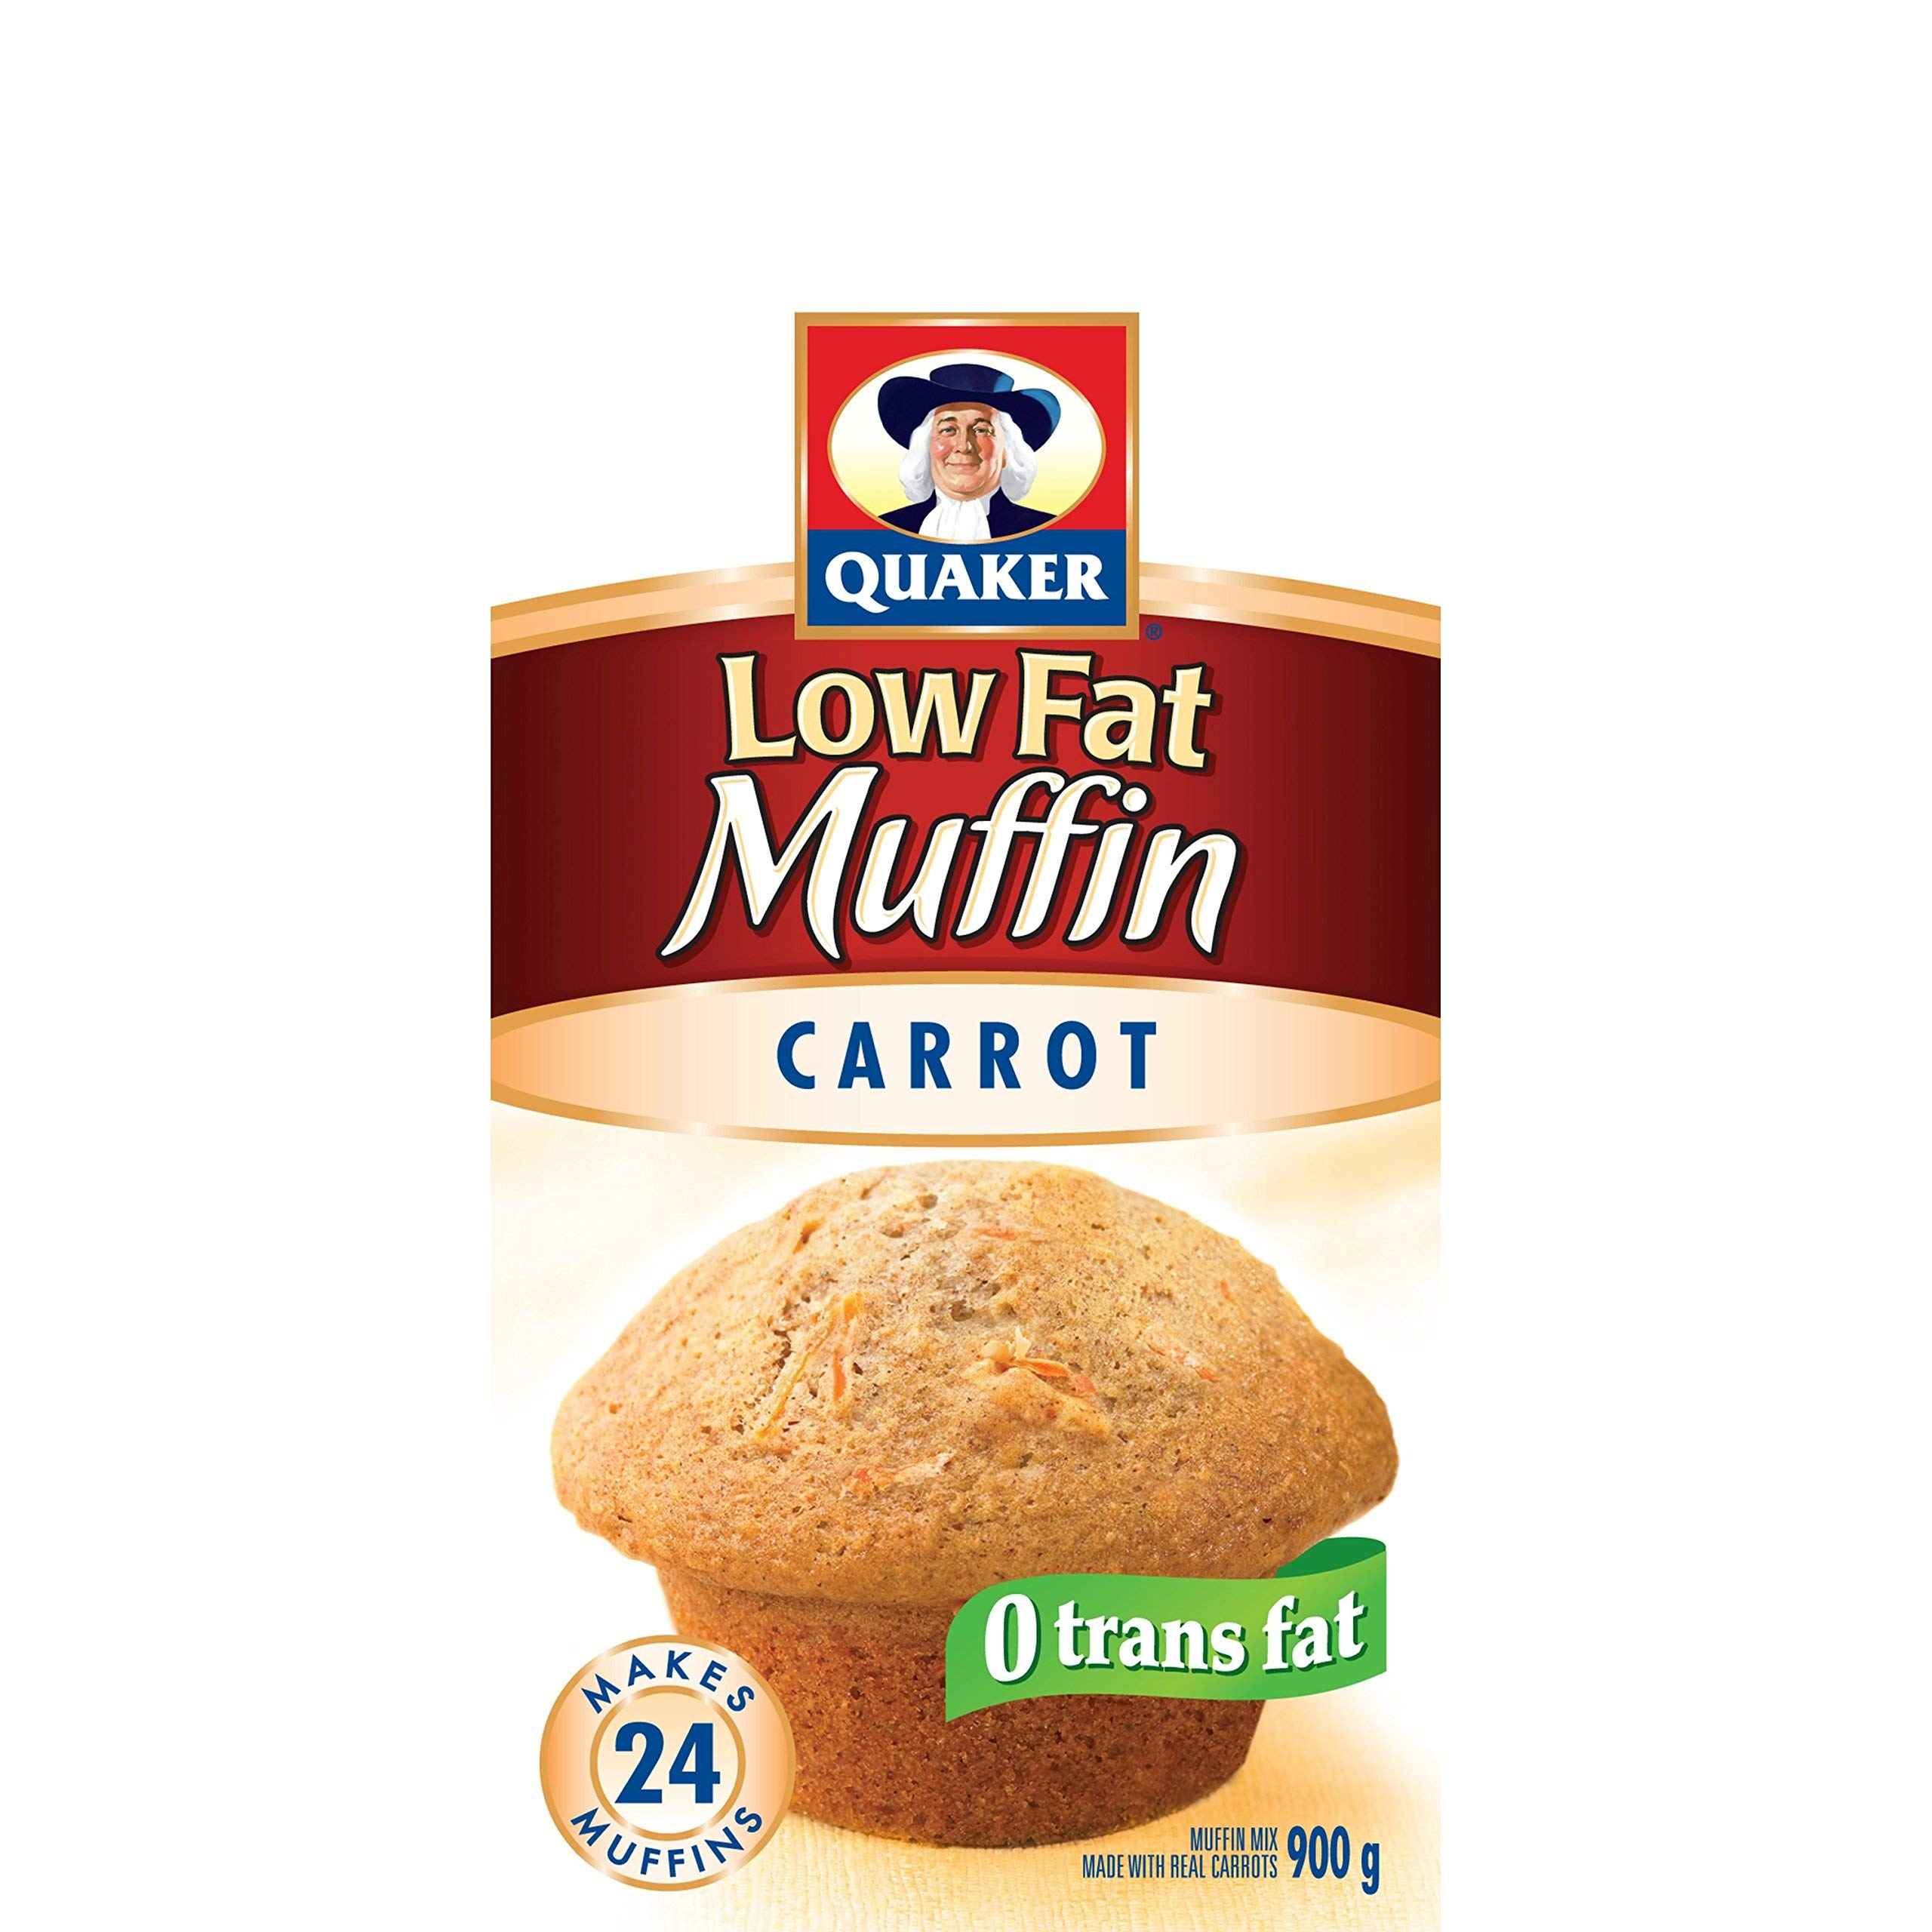 Quaker Muffin Mix Low Fat Carrot, 12ct, 900g {Imported from Canada}